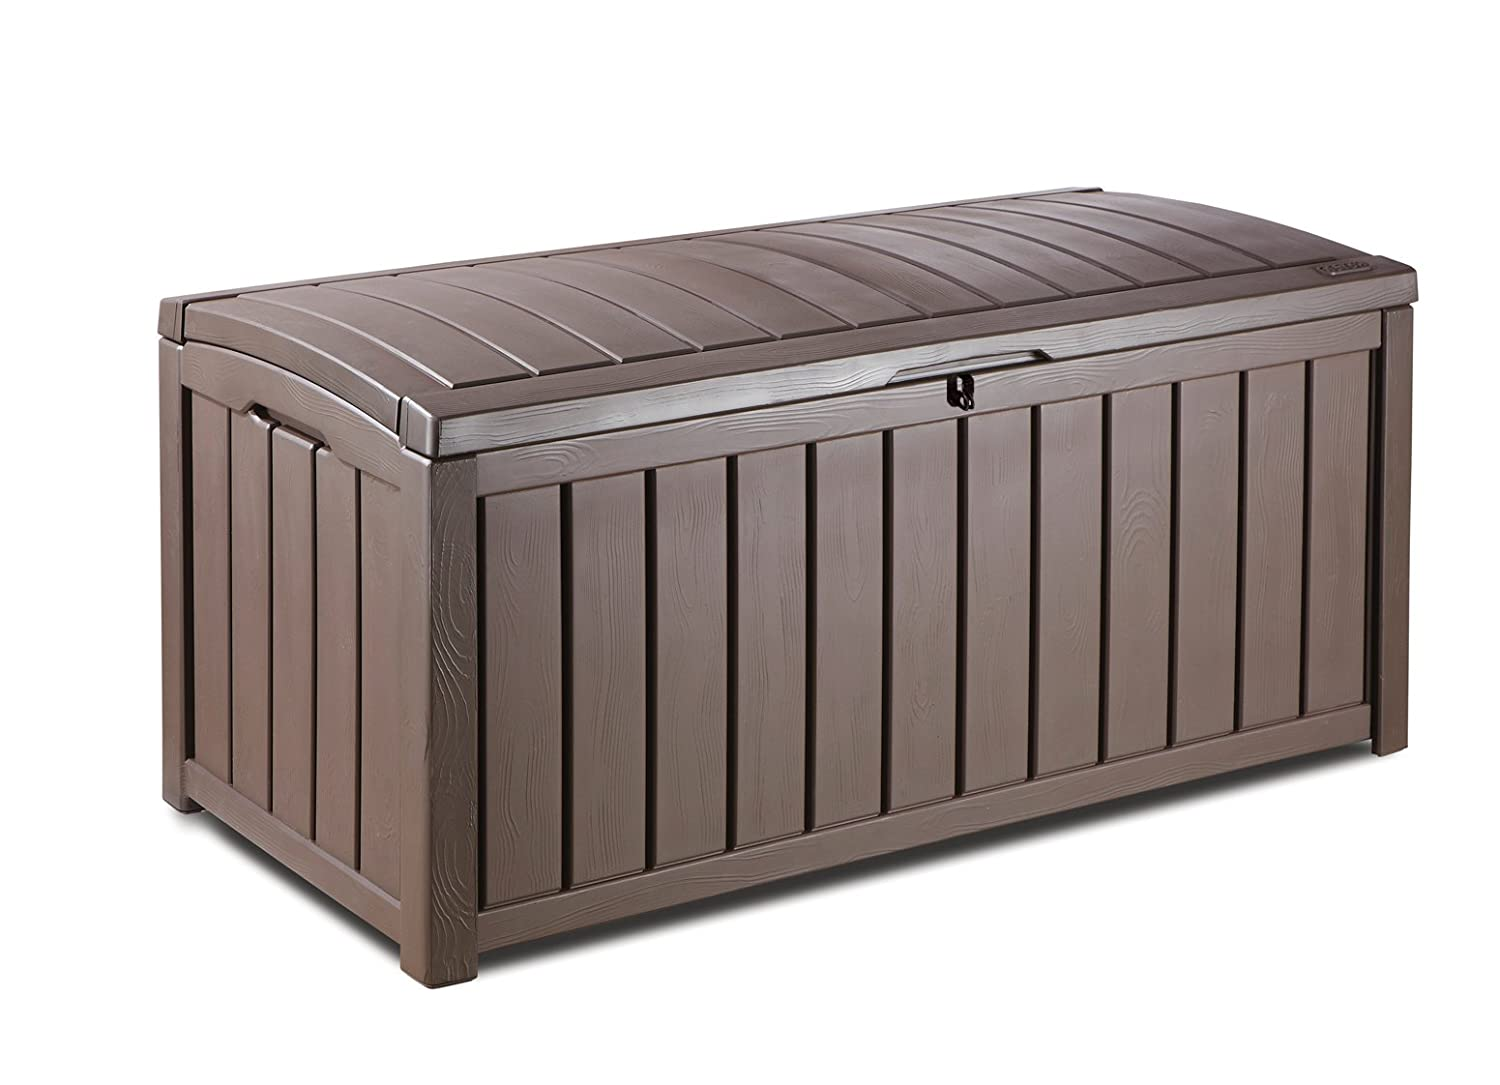 Keter Glenwood Plastic Deck Storage Container Box Outdoor Patio Furniture 101 Gal, Brown